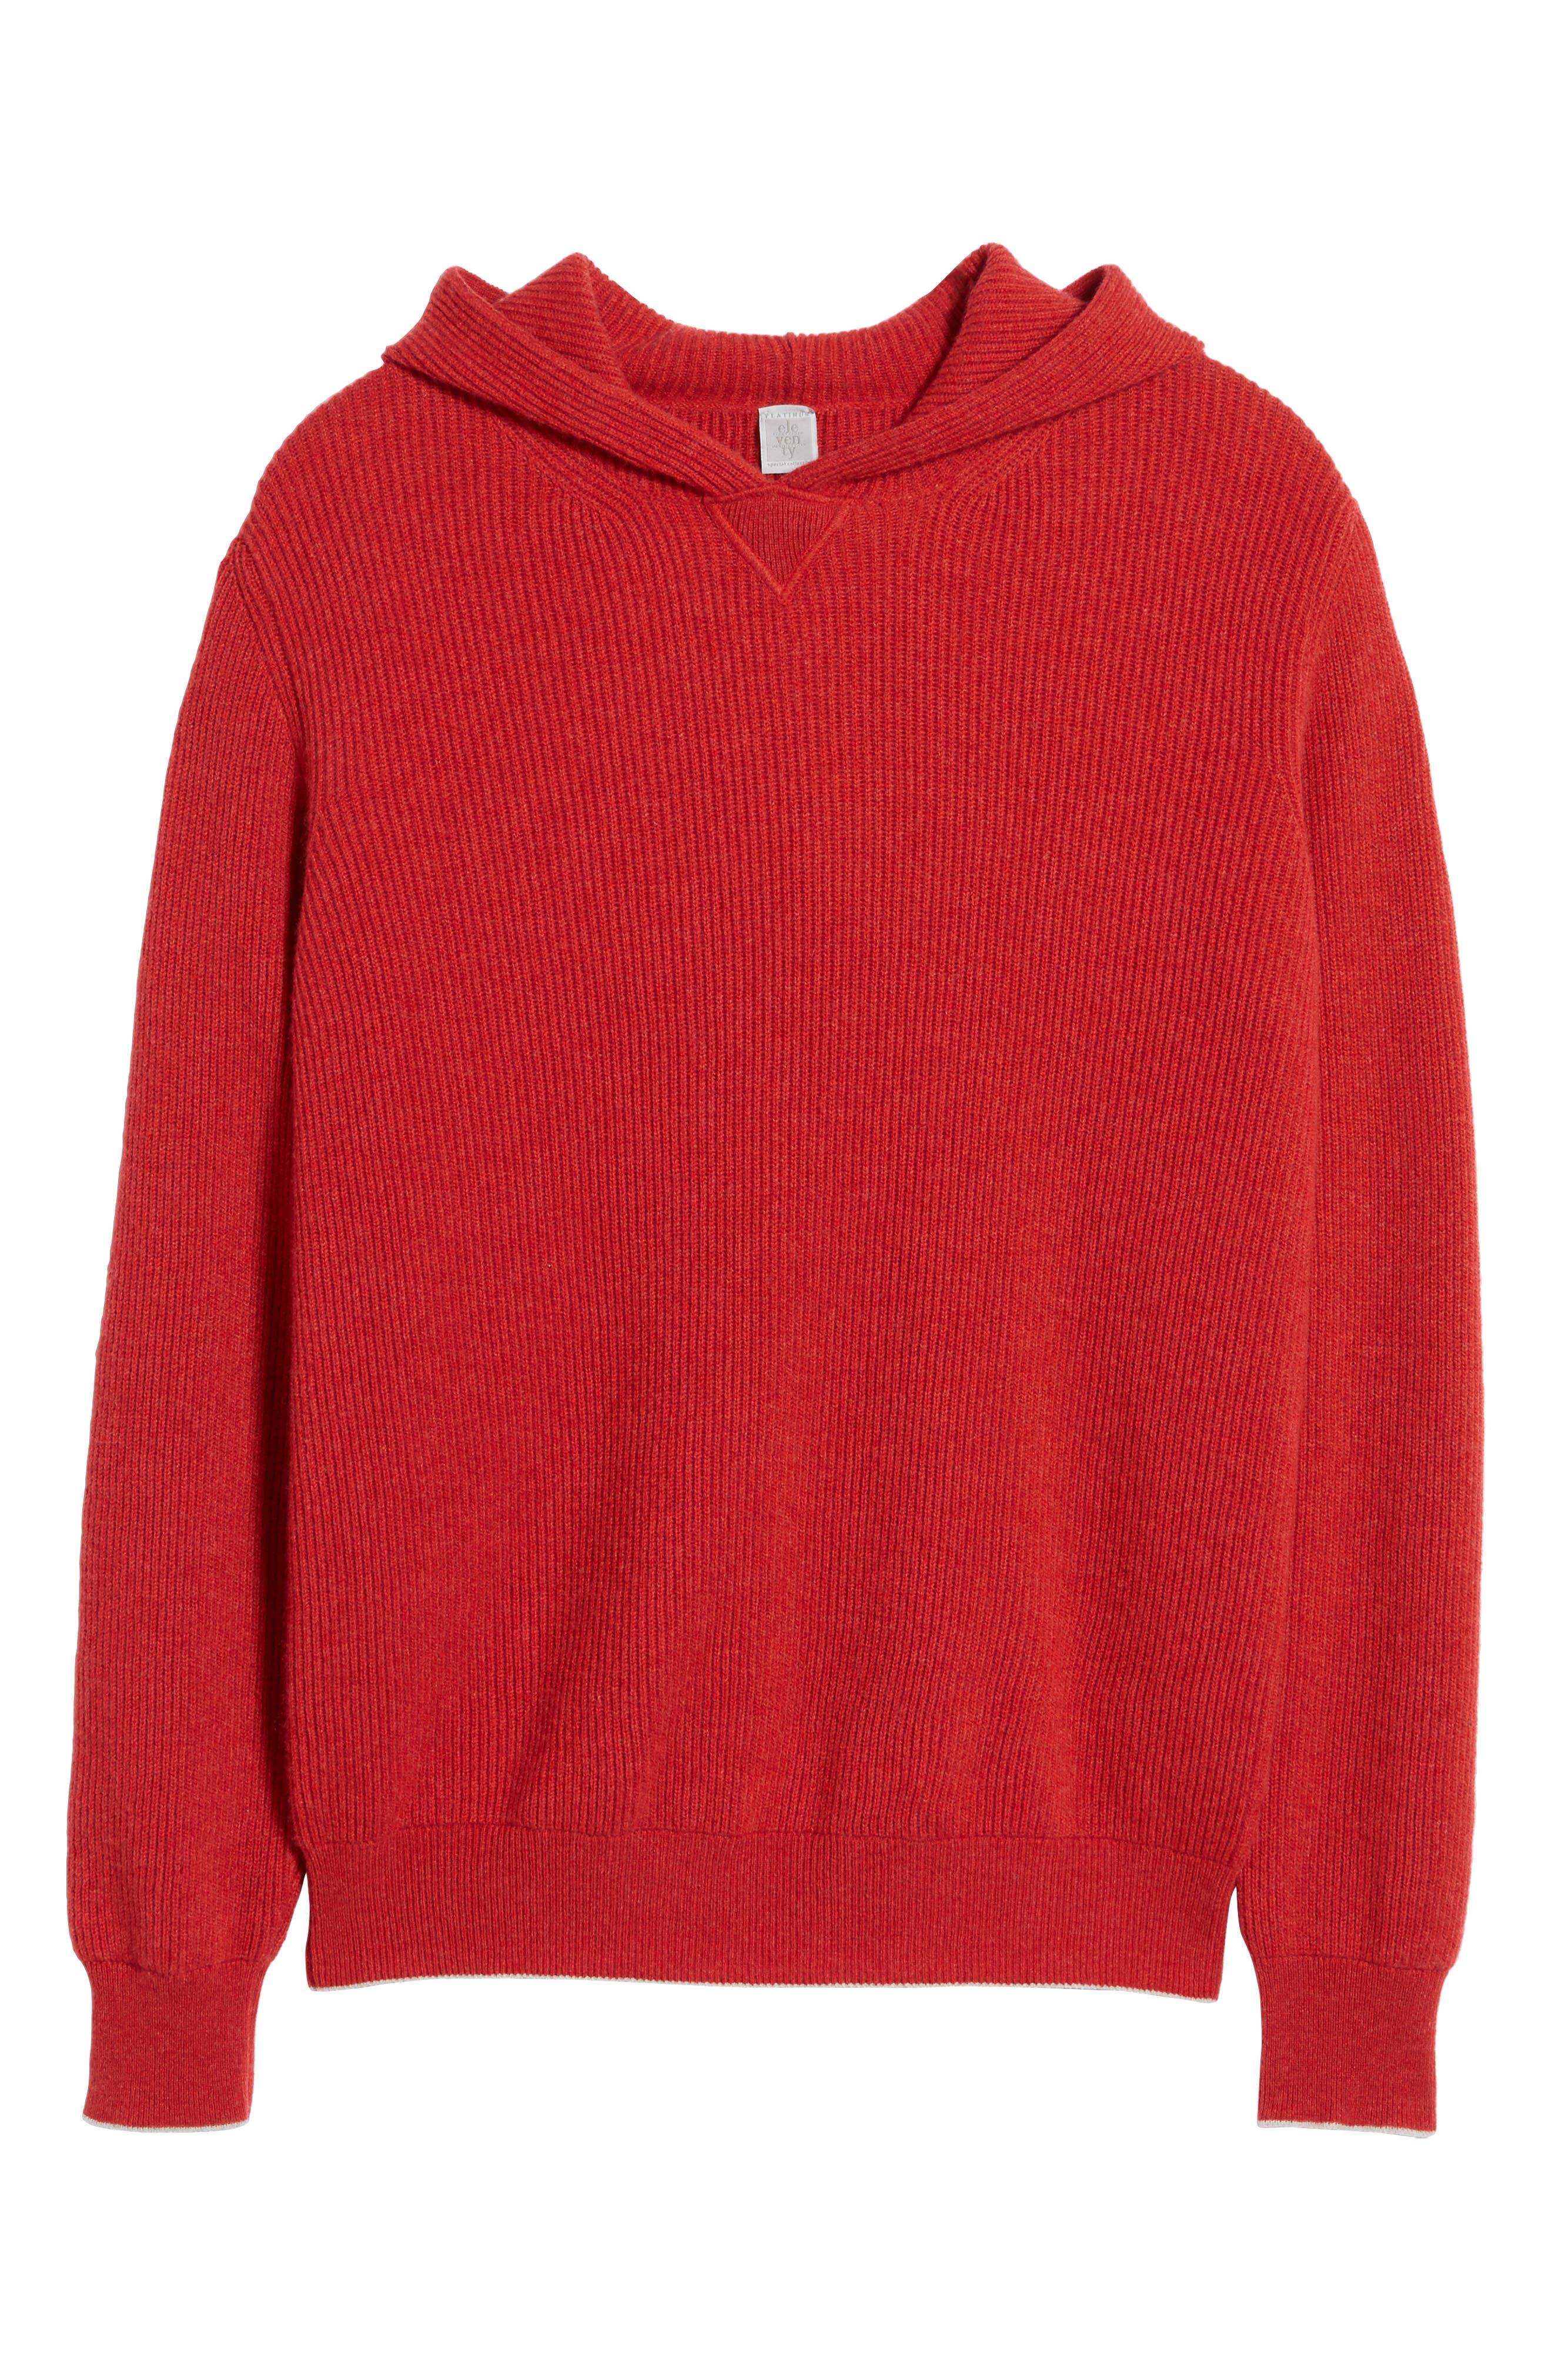 Cashmere Hoodie,                             Alternate thumbnail 6, color,                             Red